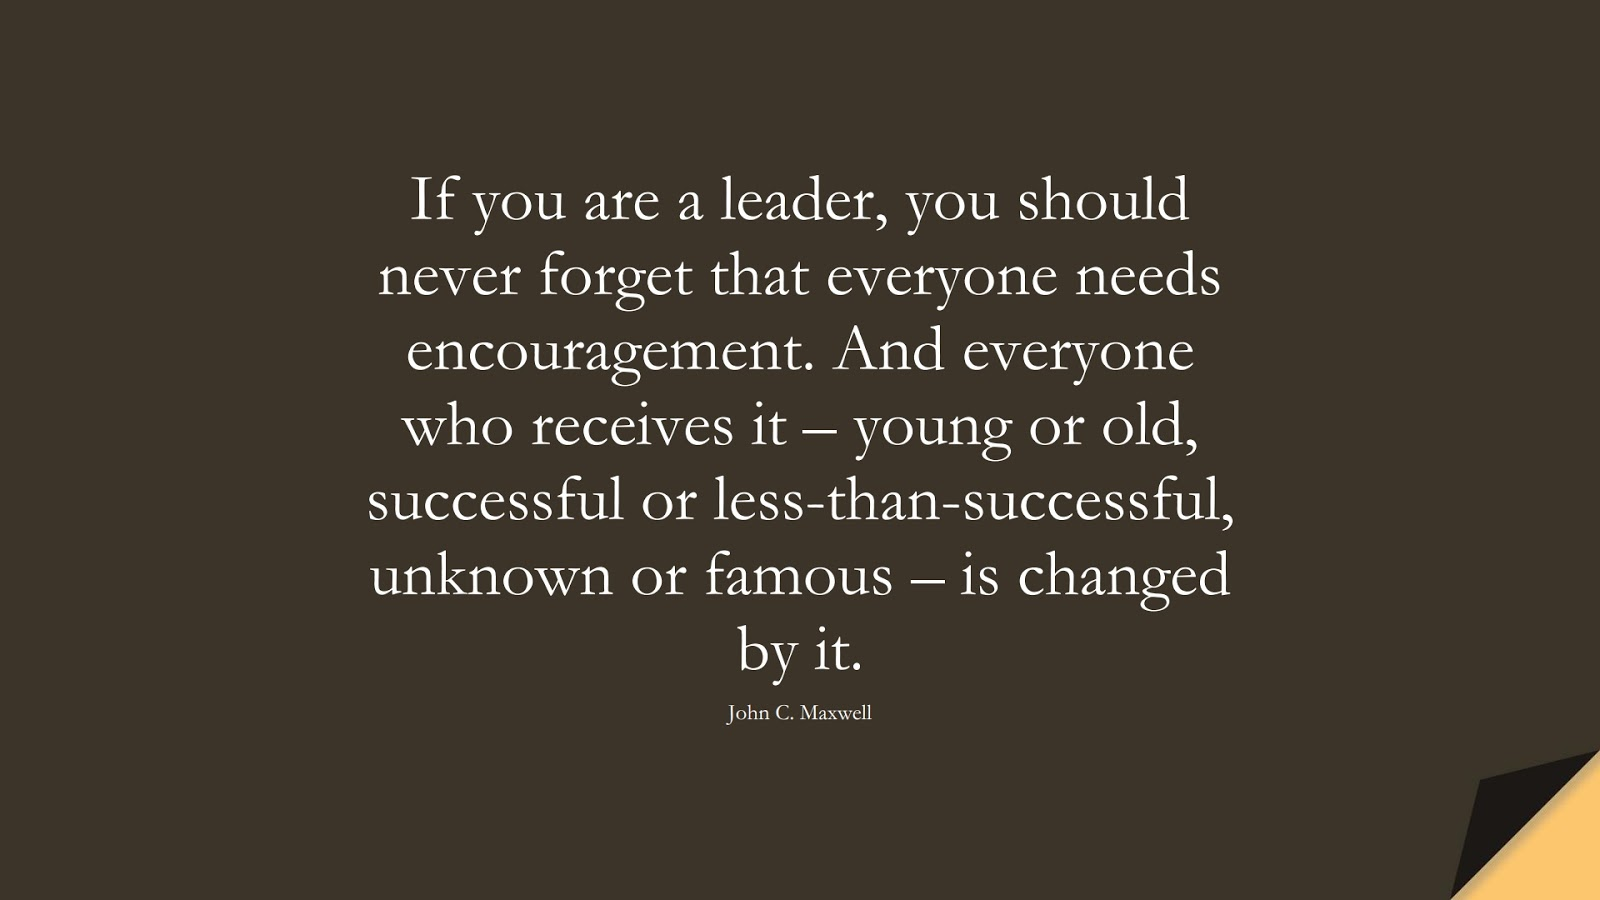 If you are a leader, you should never forget that everyone needs encouragement. And everyone who receives it – young or old, successful or less-than-successful, unknown or famous – is changed by it. (John C. Maxwell);  #EncouragingQuotes